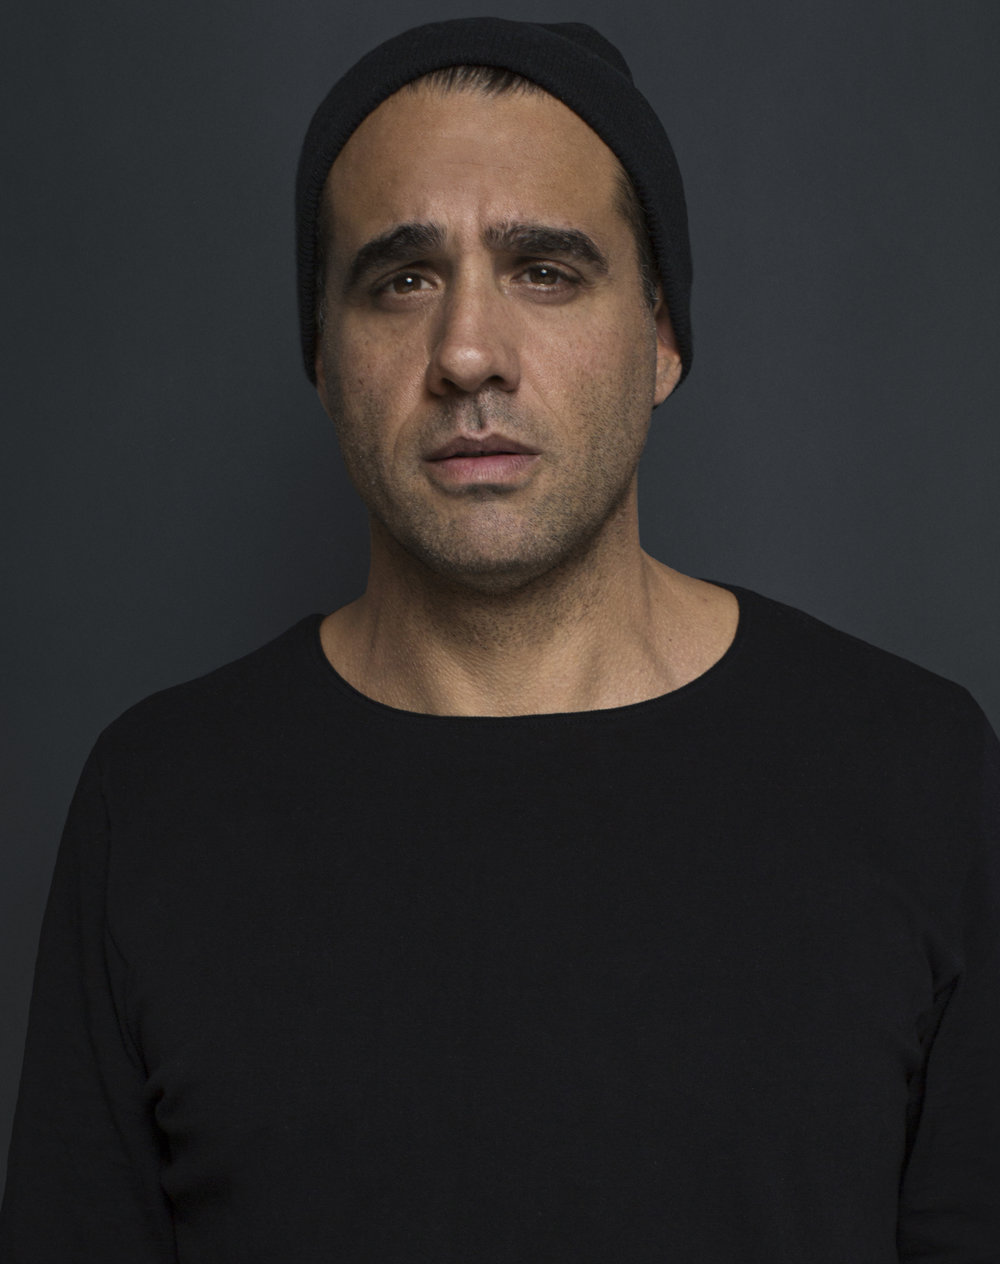 Bobby Cannavale / ITS harassment campaign